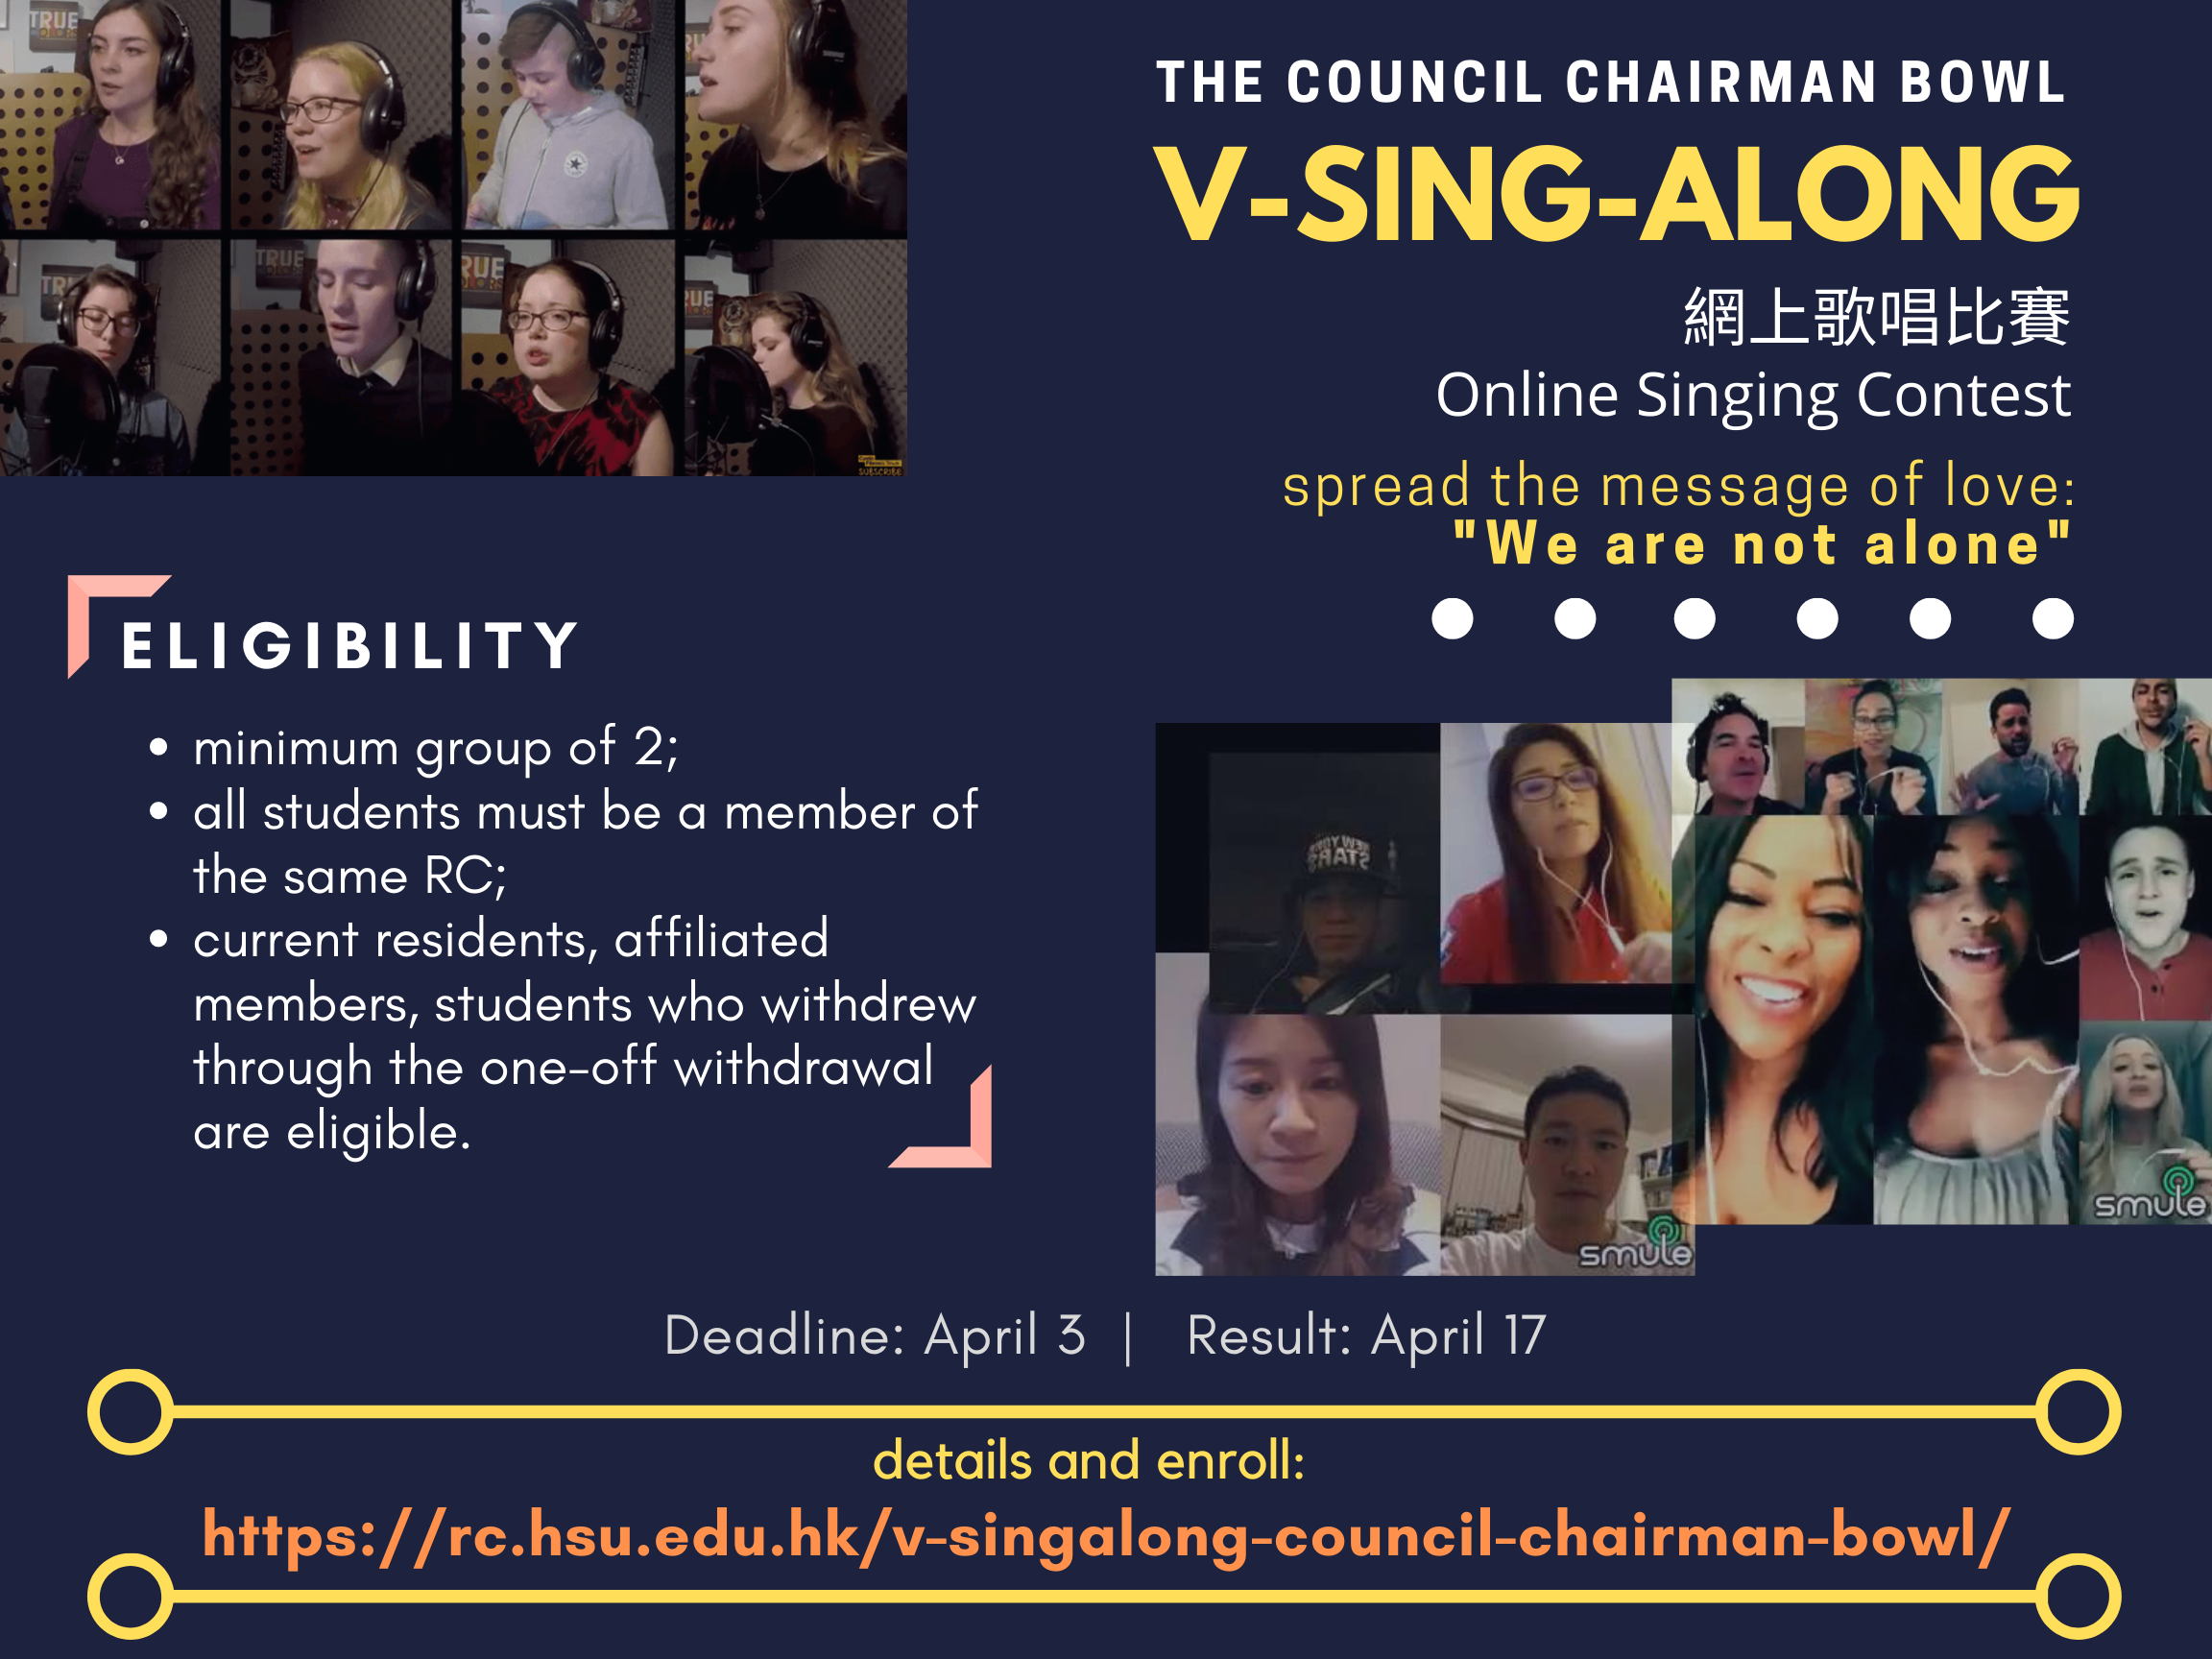 V-Sing-Along Online Singing Contest